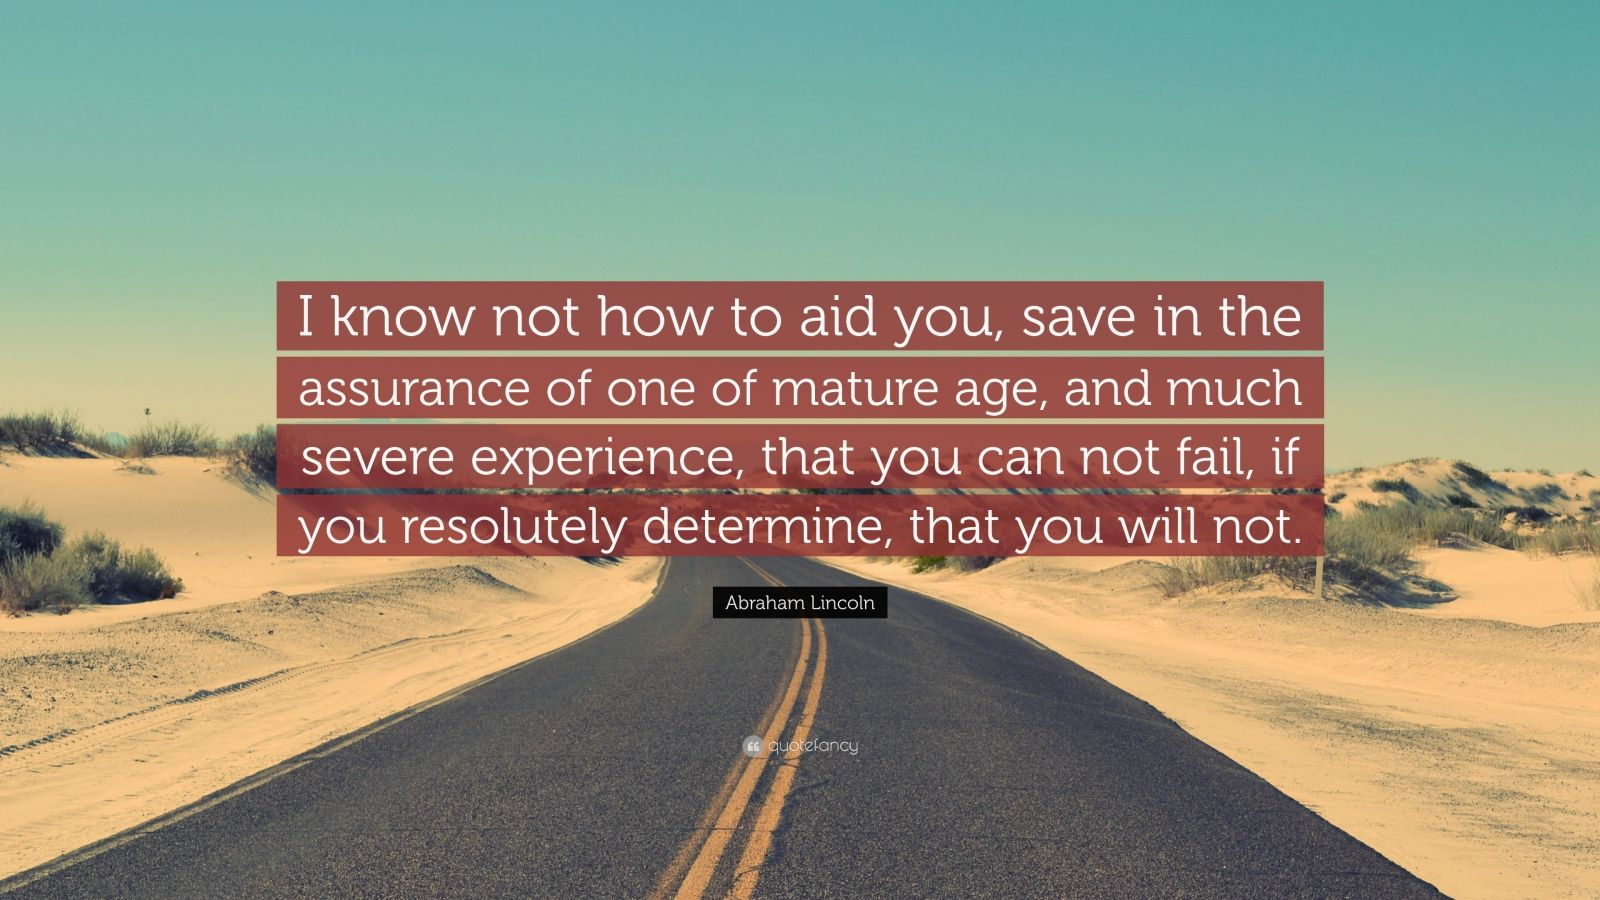 """Abraham Lincoln Quote: """"I know not how to aid you, save in the assurance of one of mature age, and much severe experience, that you can not fail, if you resolutely determine, that you will not."""""""